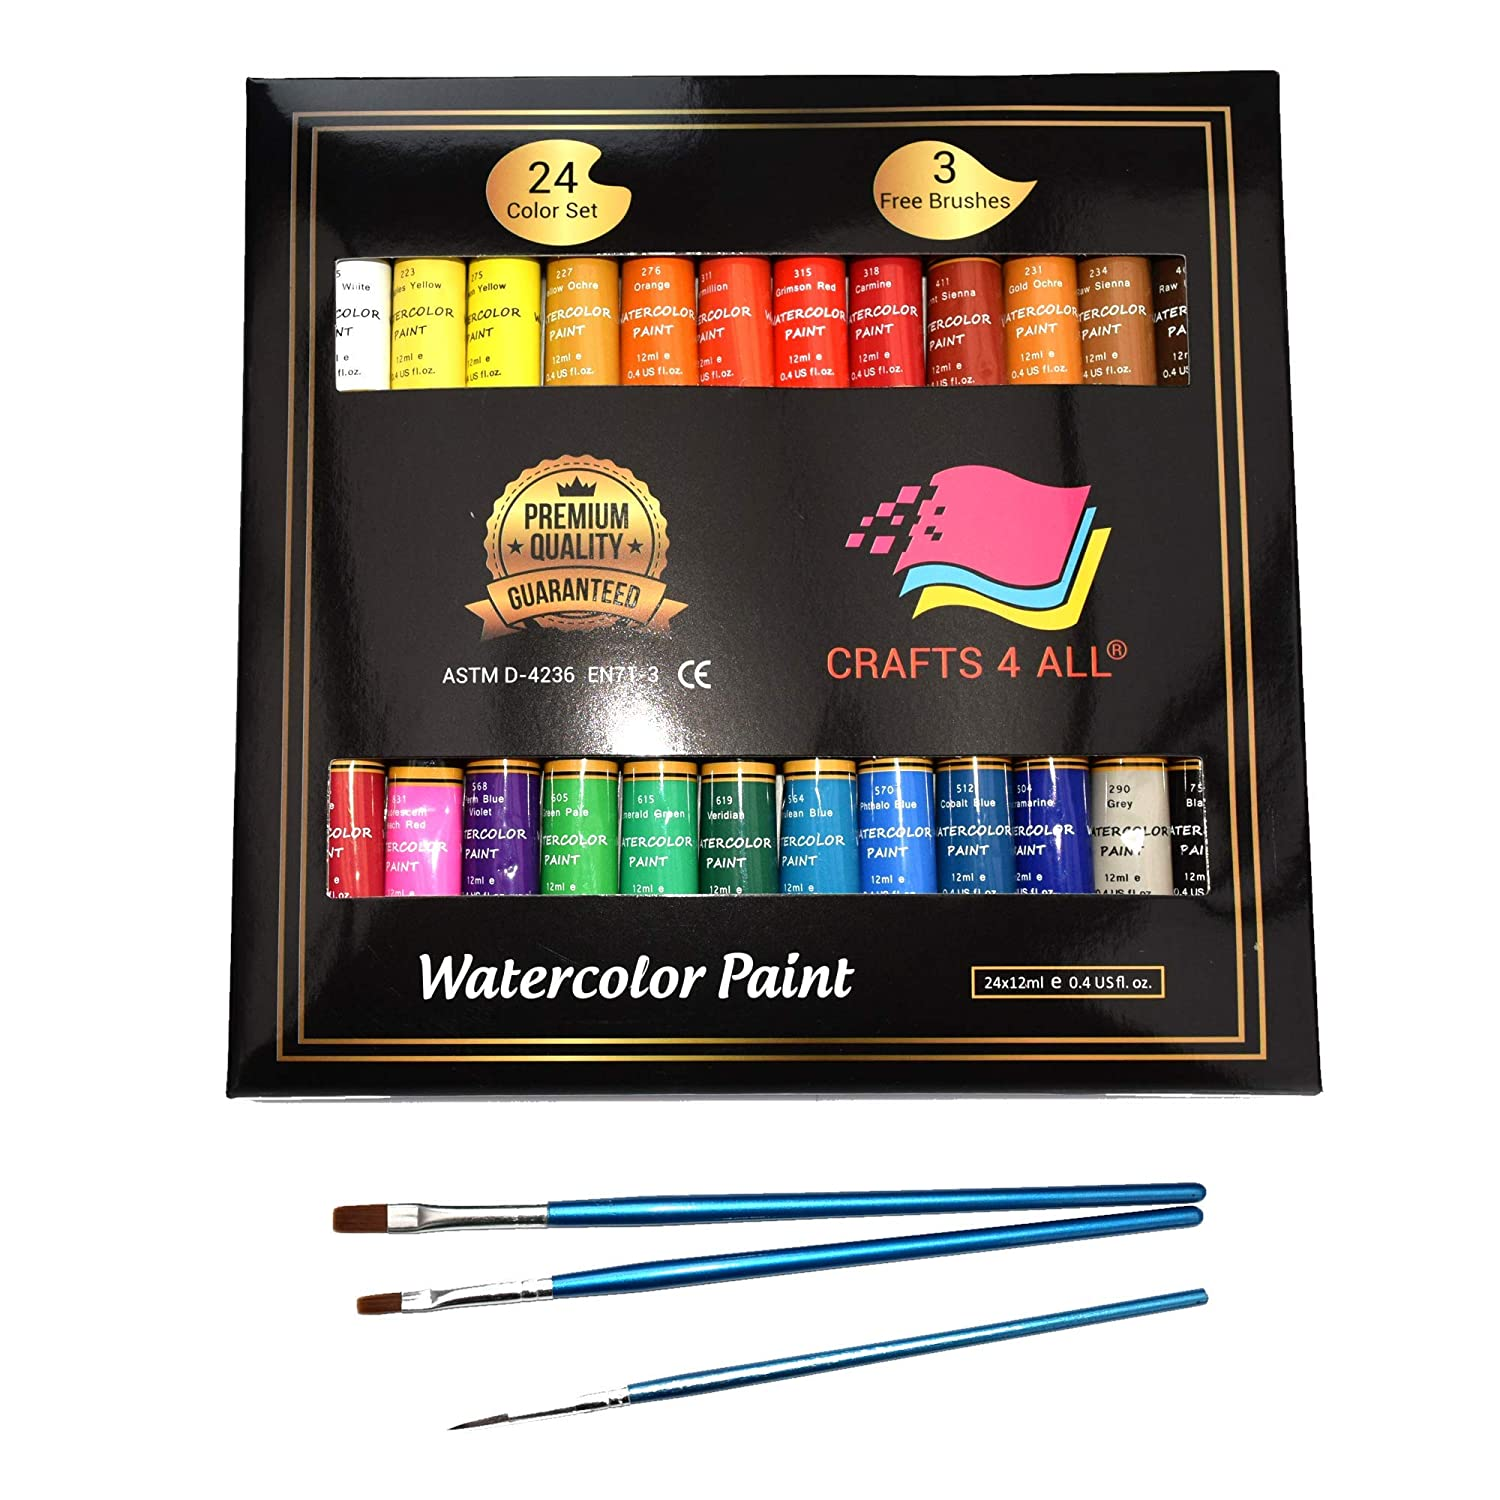 Watercolor Paint Set by Crafts 4 All Premium Quality Art Watercolors Painting Kit for Artists, Students & Beginners - Perfect for Landscape and Portrait Paintings on Canvas (24x12ml) (24x12ml) 4336946295